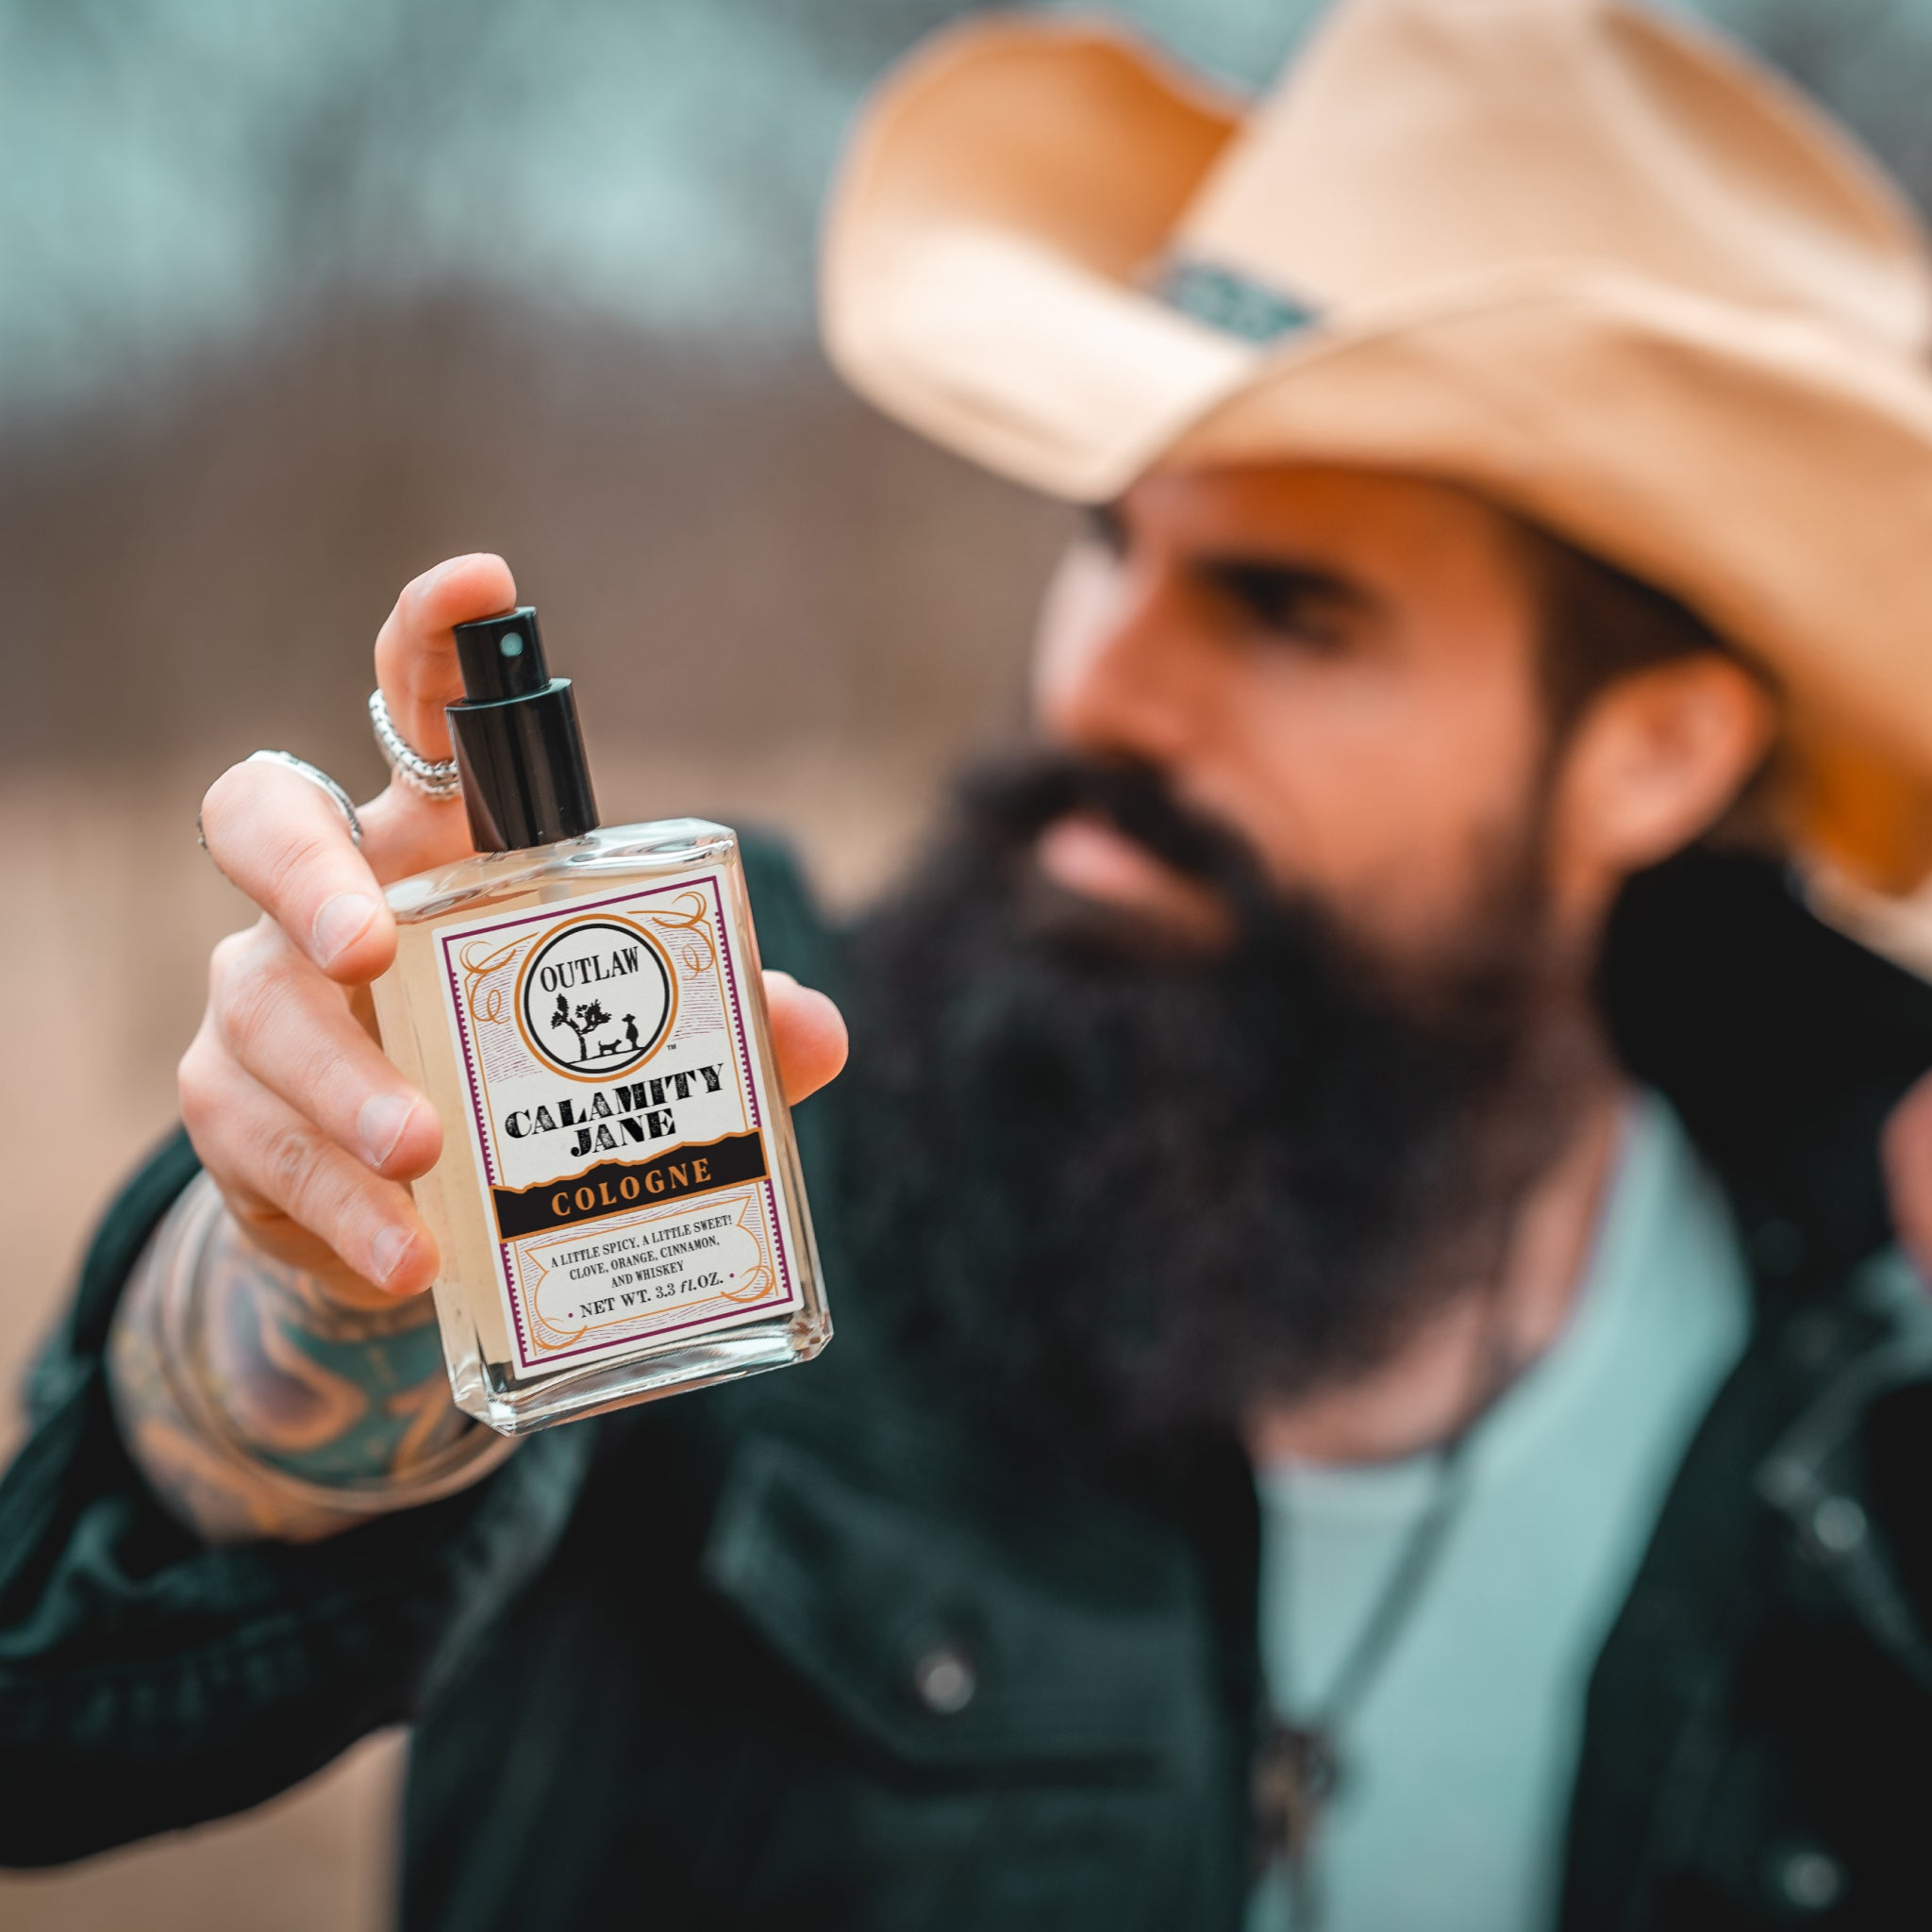 Western Outlaw Cologne for men and women